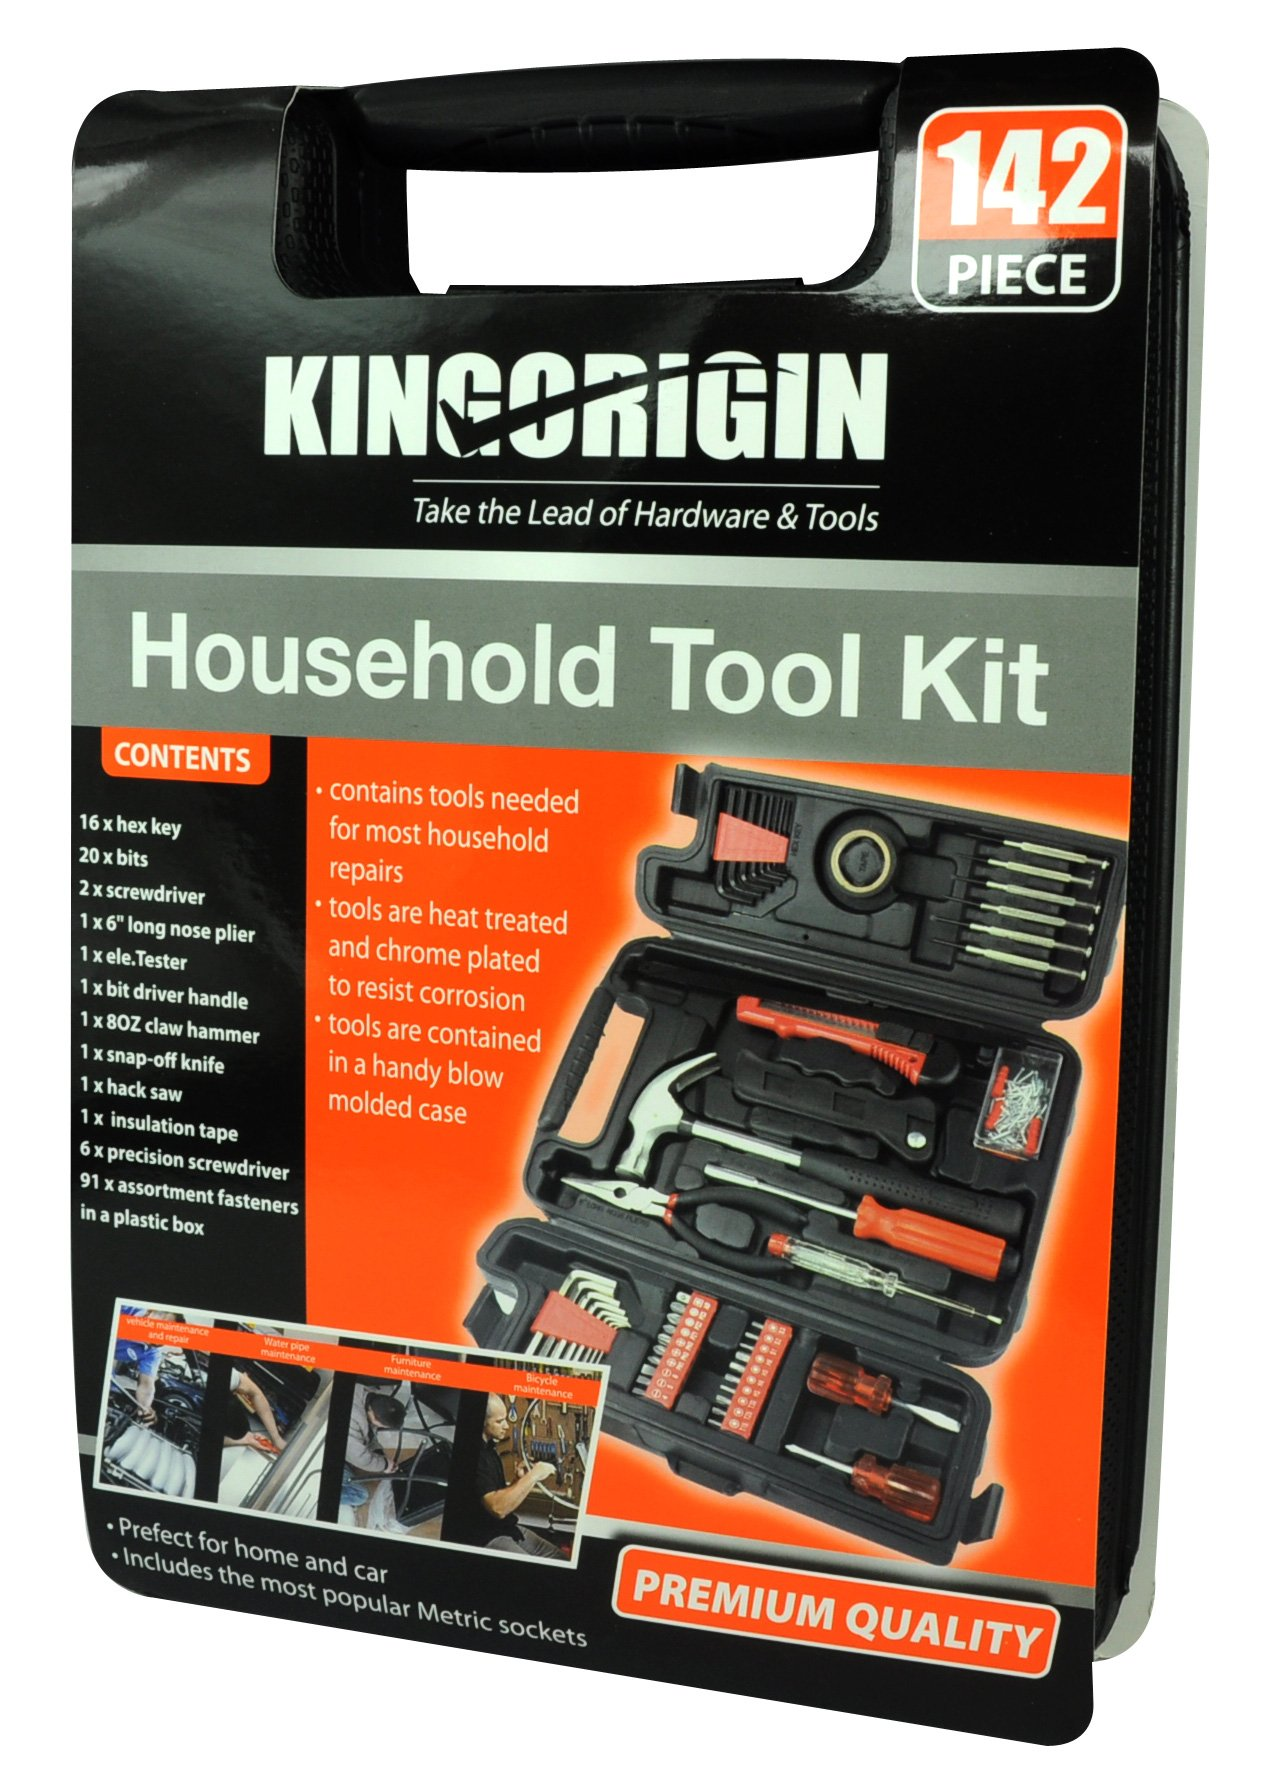 Kingorigin 142 Piece Professional Multi Tool Kit Home Repair General Household For Maintenance With